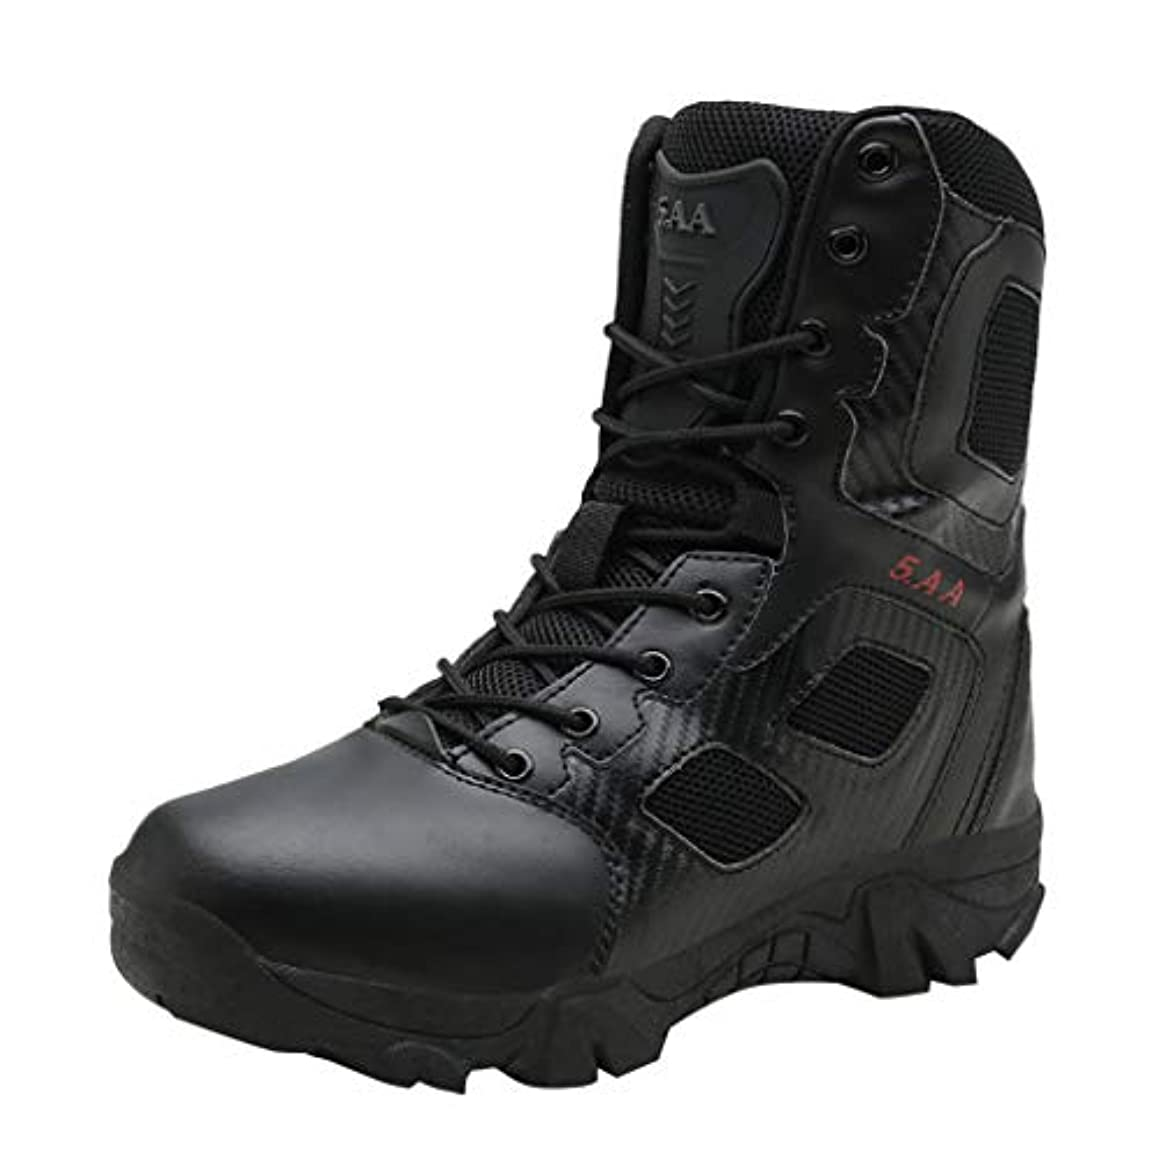 JJLIKER Men's High-Top Outdoor Military Tactical Ankle Boots Non-Slip Ultra Combat Mid Hiking Shoes